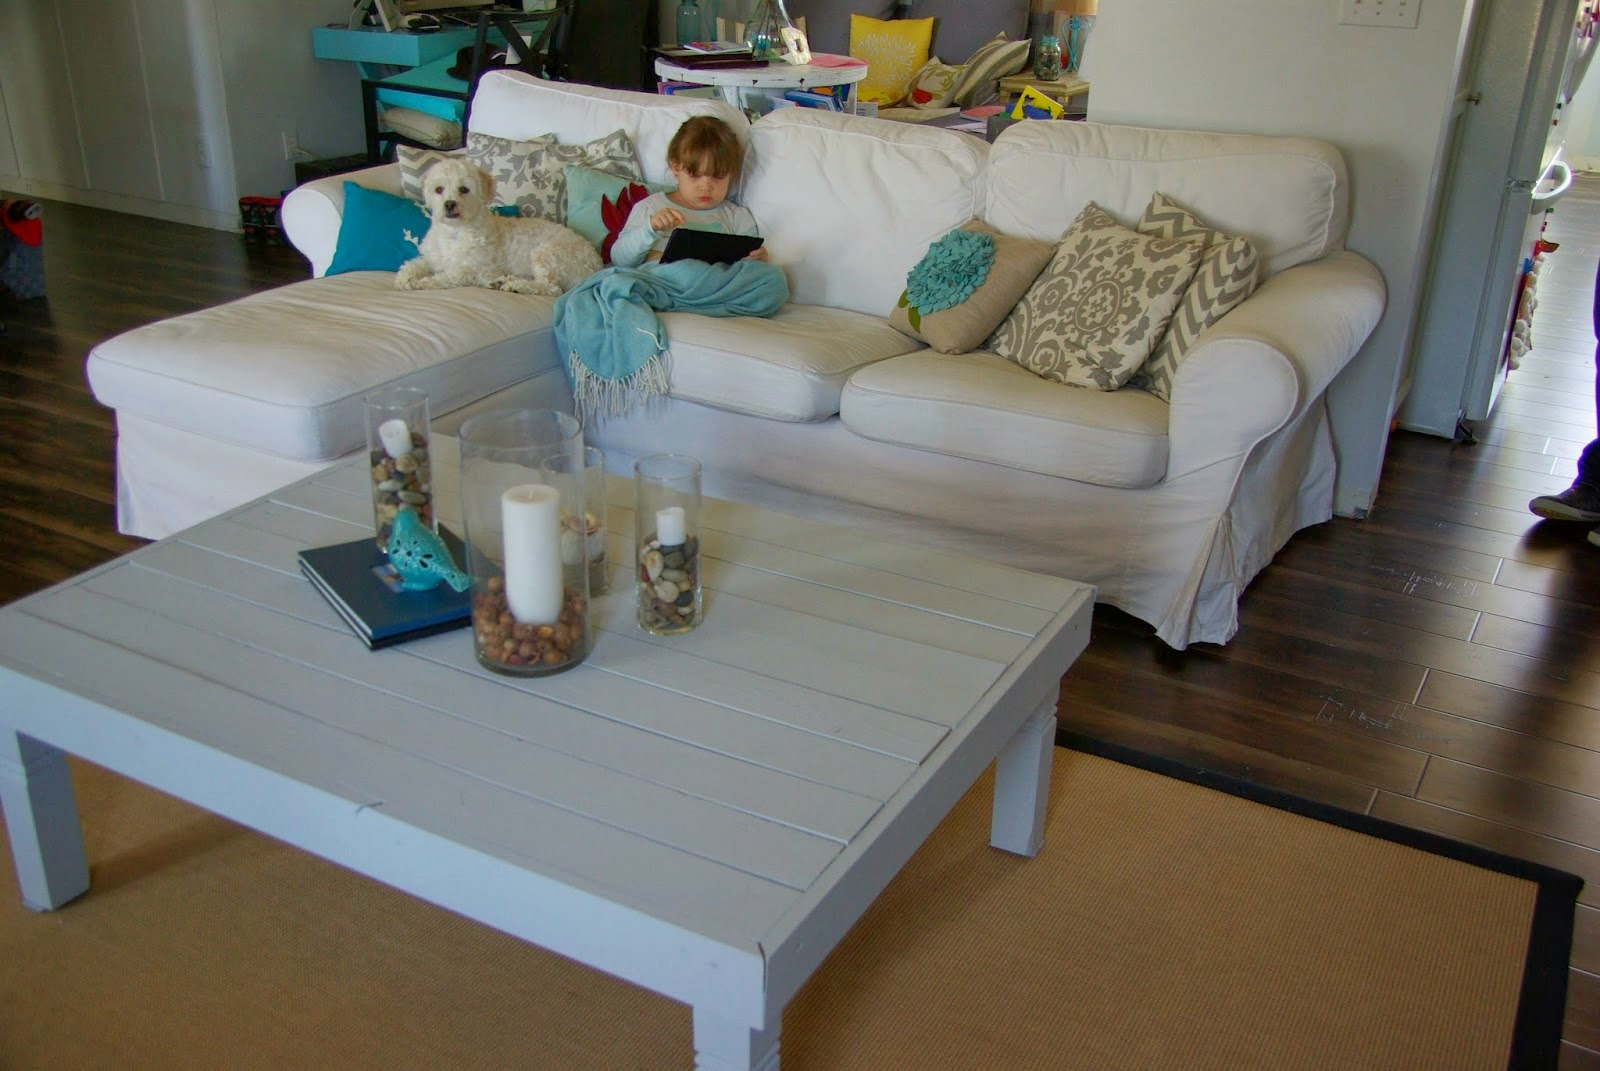 http://ourhousenowahome.blogspot.com/2014/03/coffee-table-redo.html